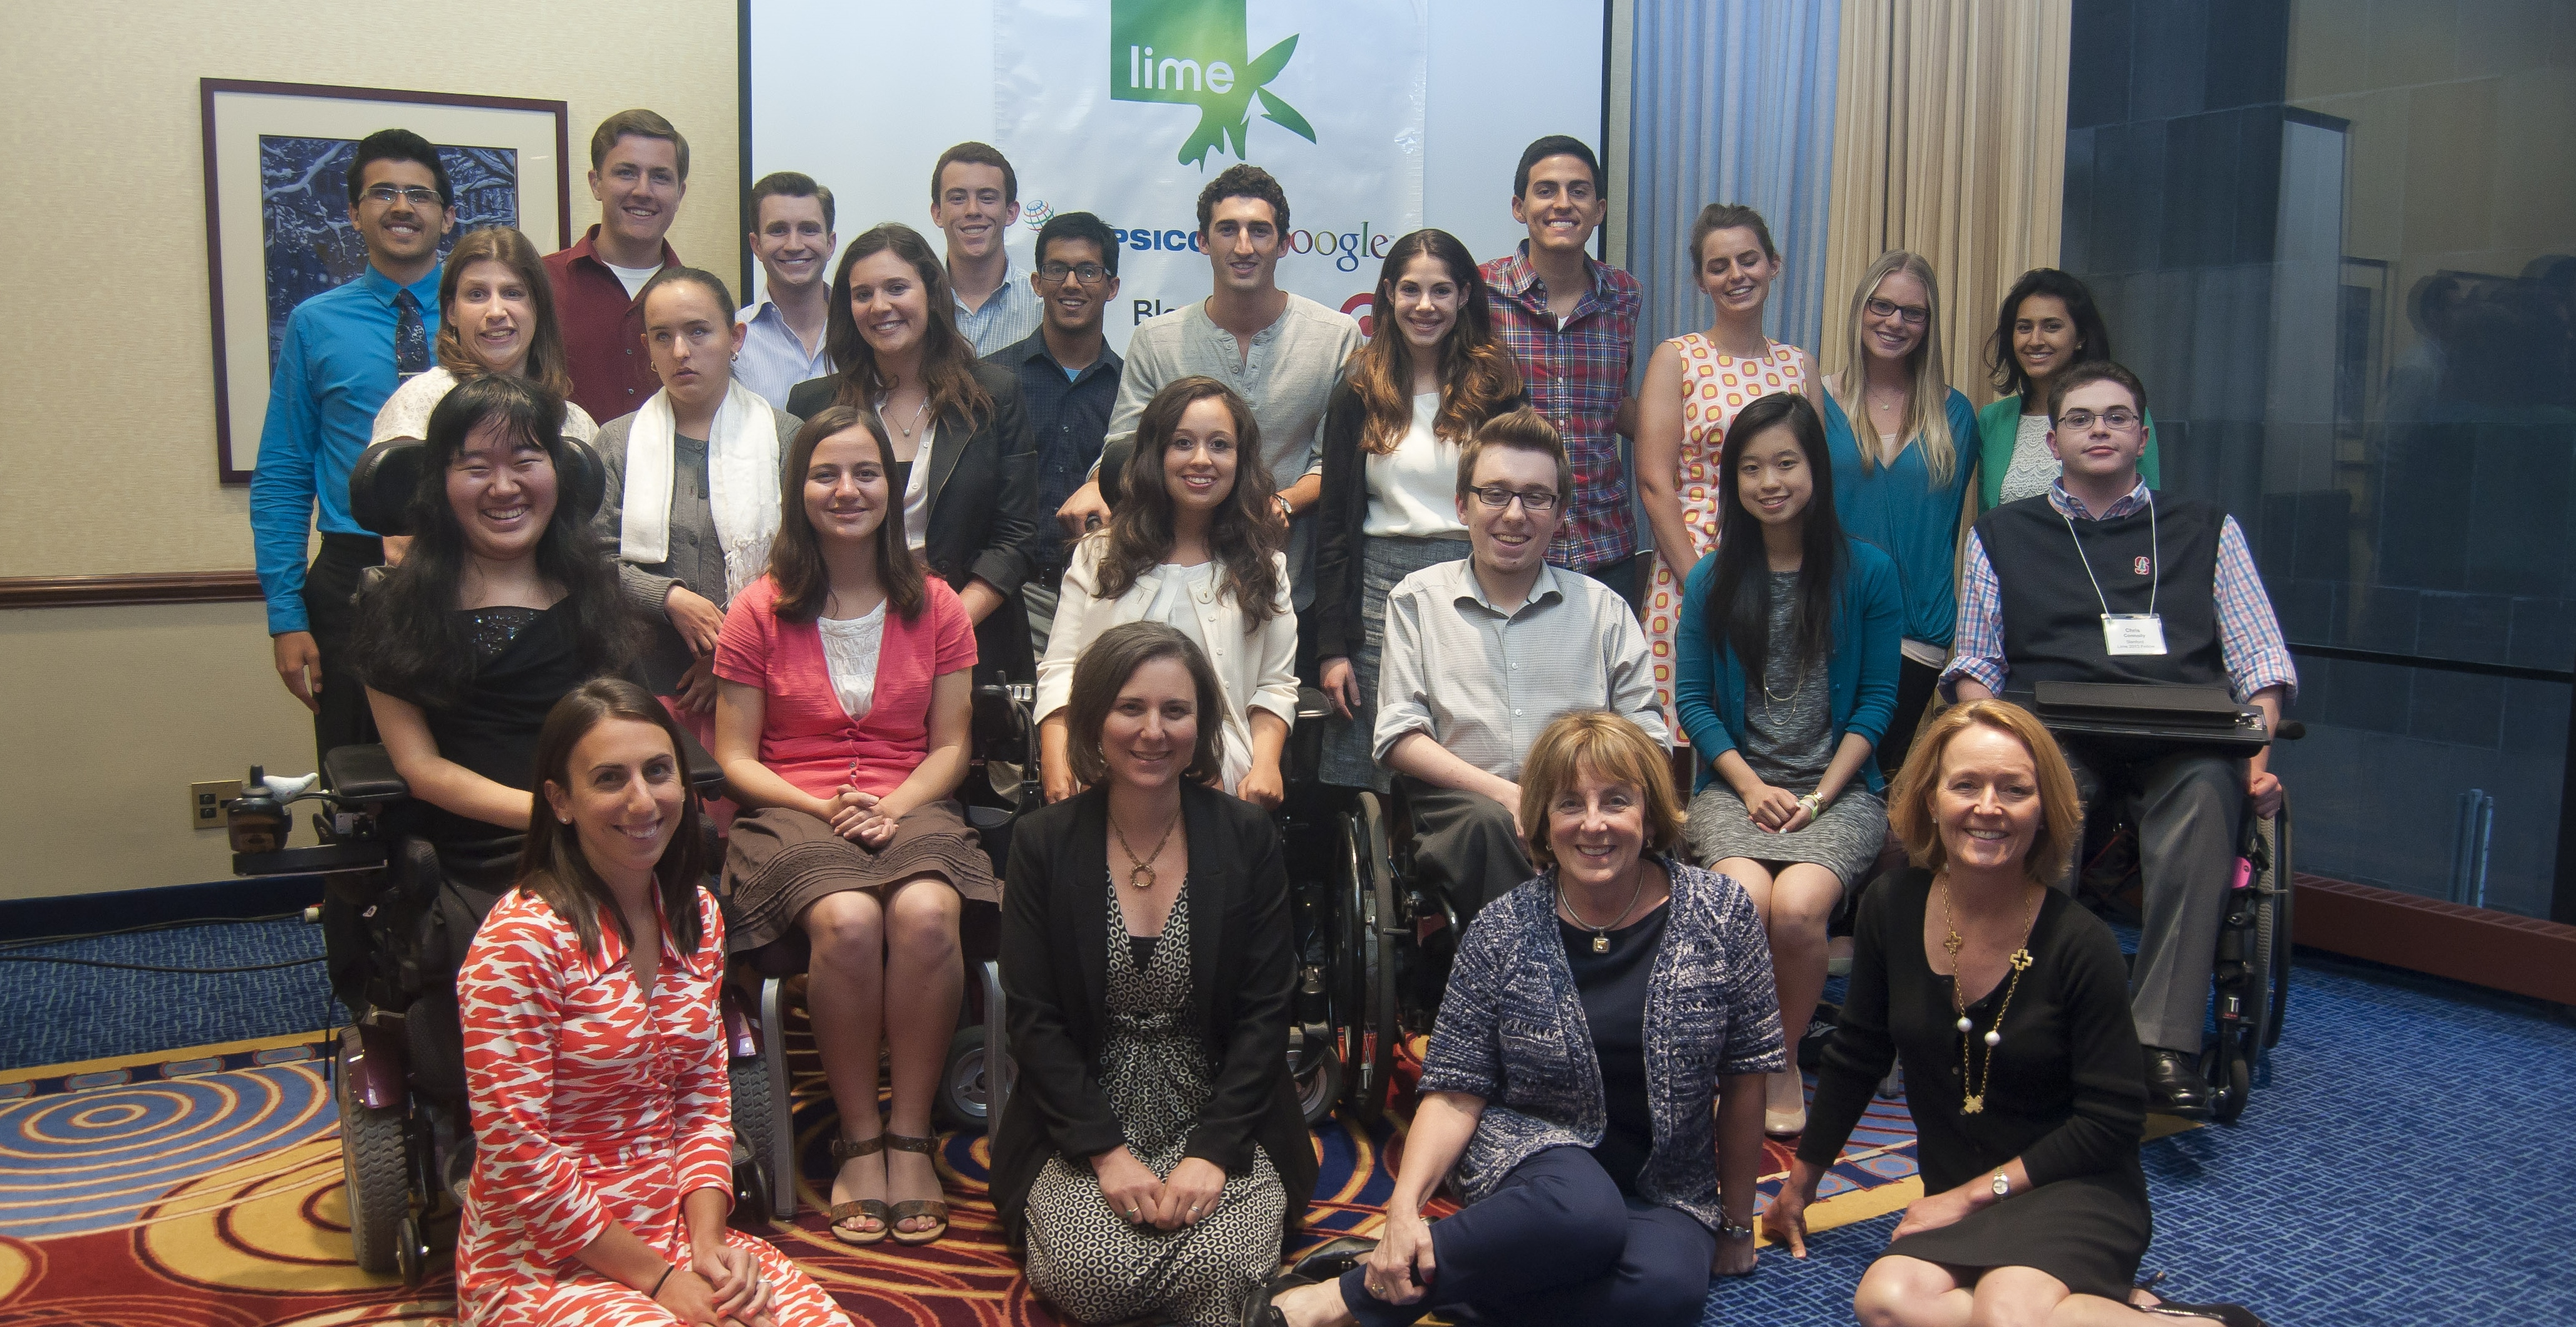 2013 Fellows and the Lime team